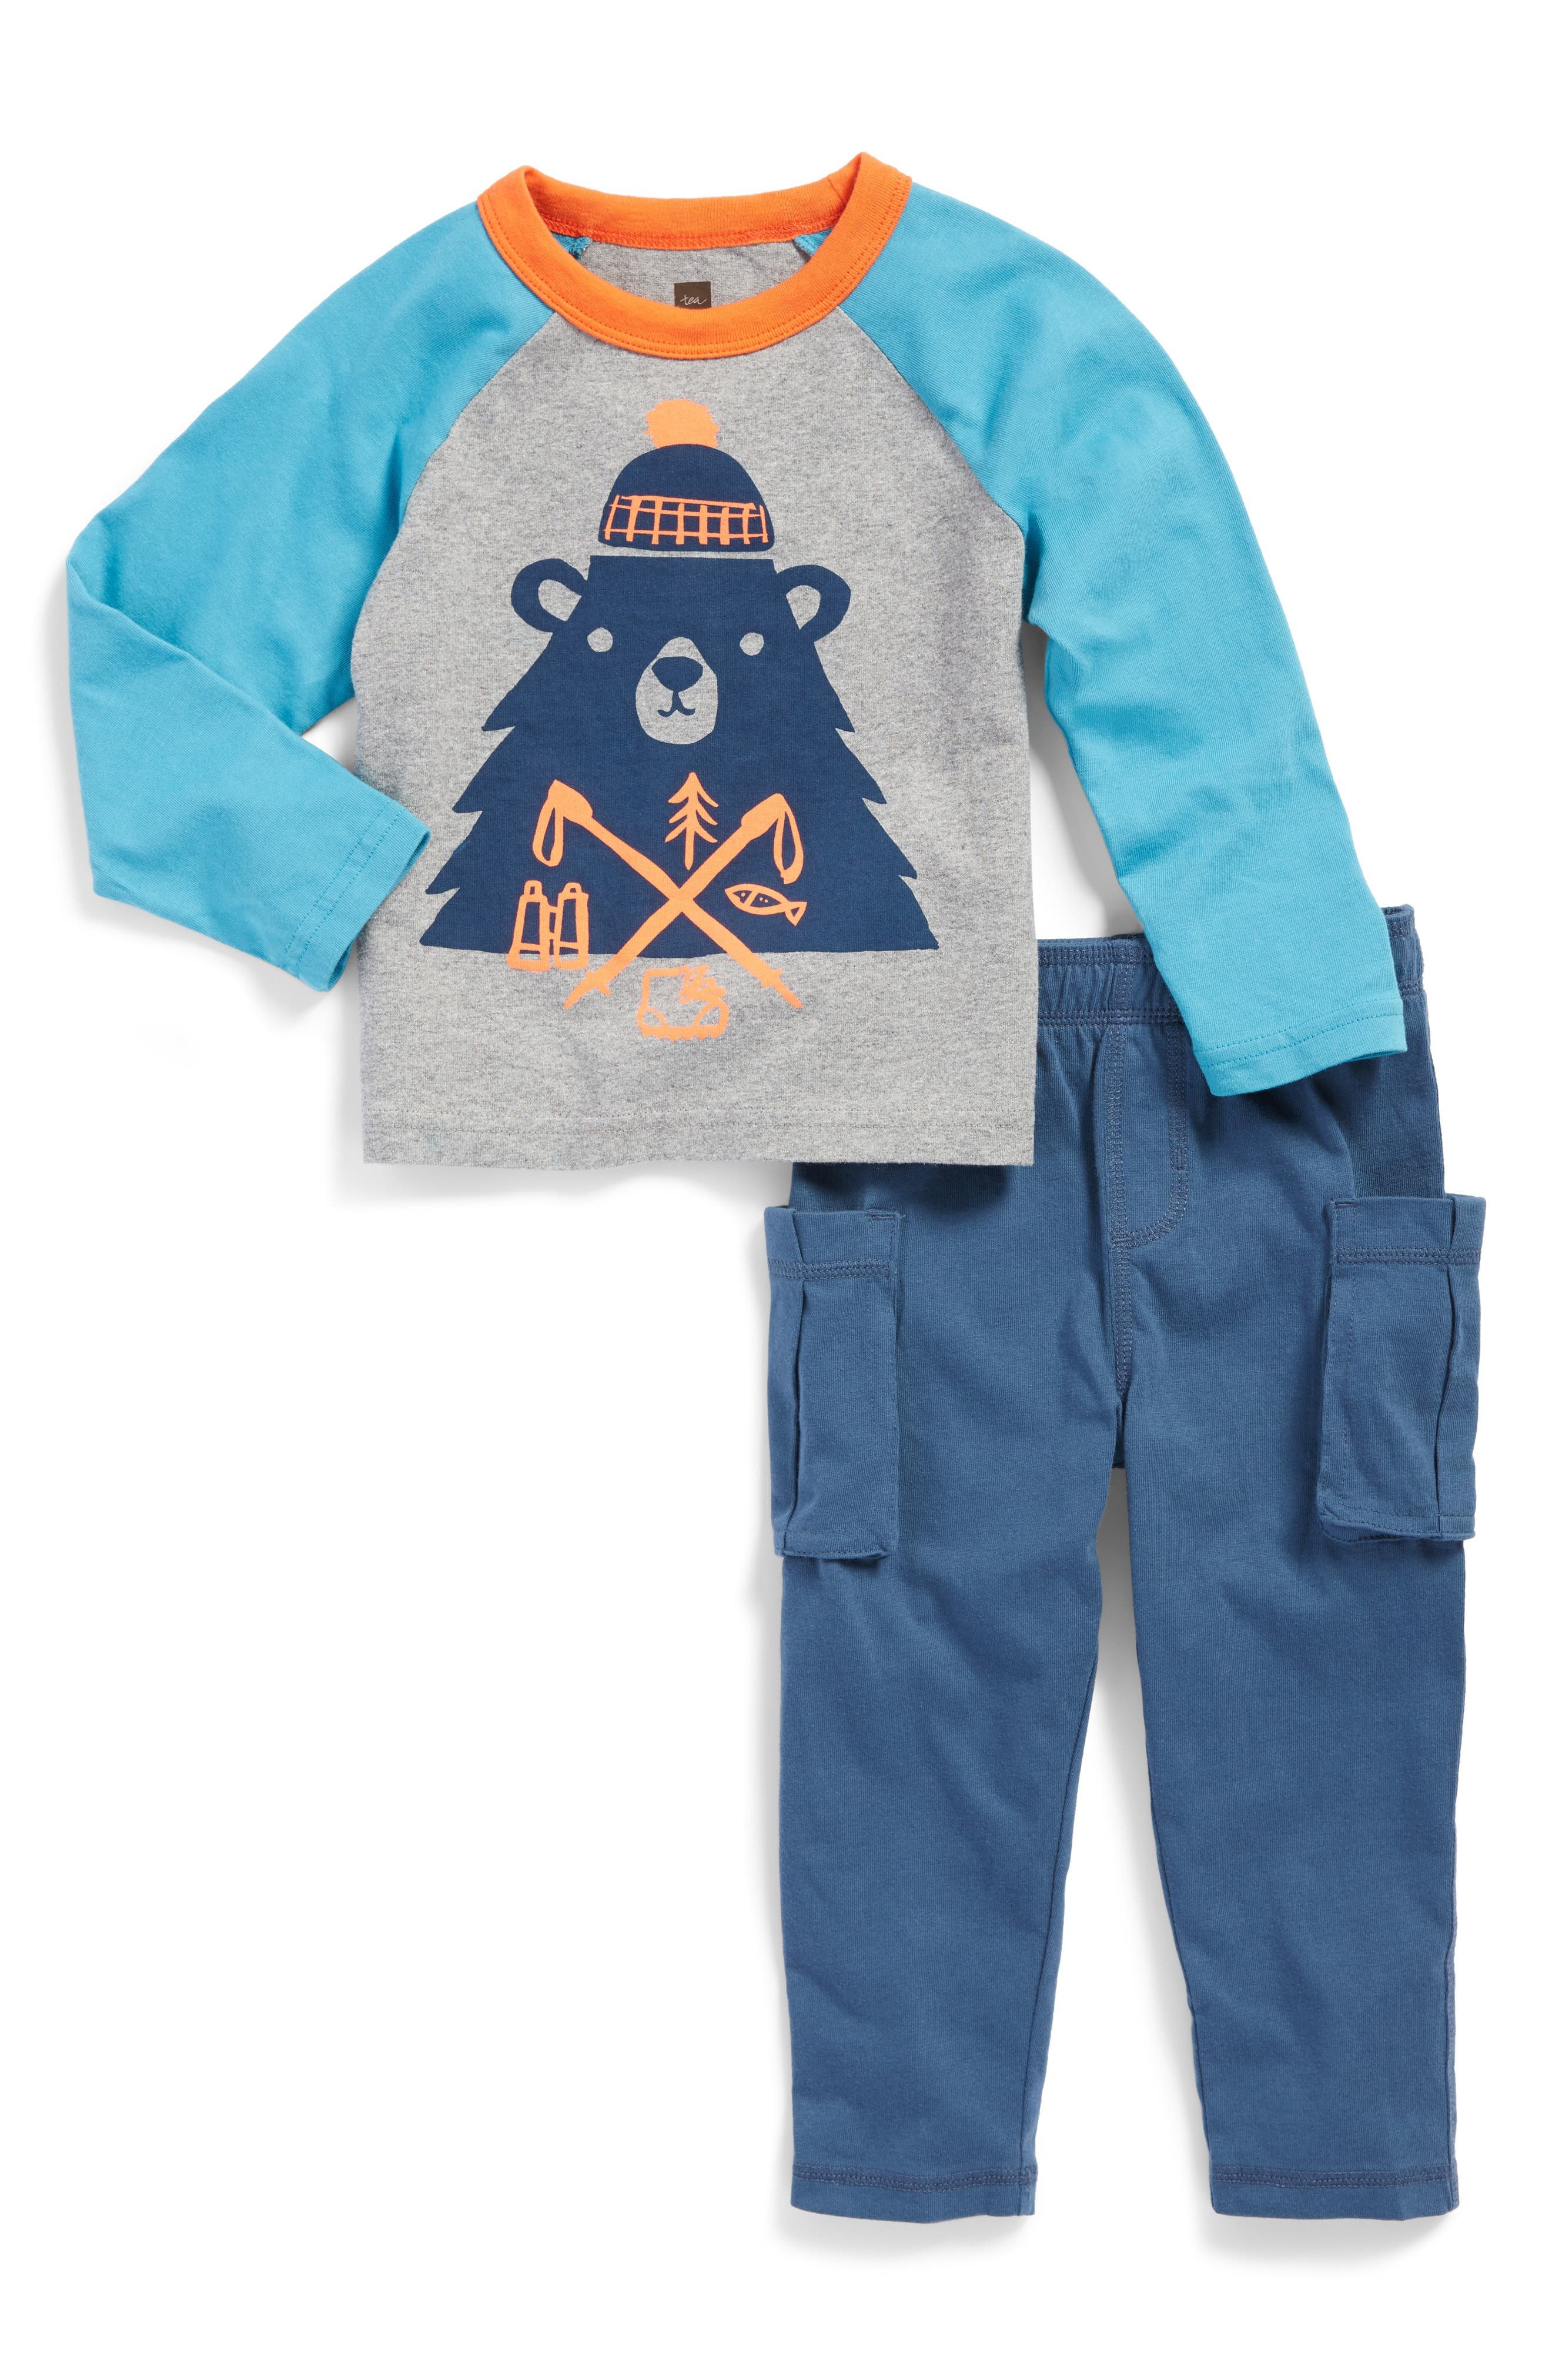 Alternate Image 1 Selected - Tea Collection Munro Bear Graphic T-Shirt & Cargo Pants Set (Baby Boys)